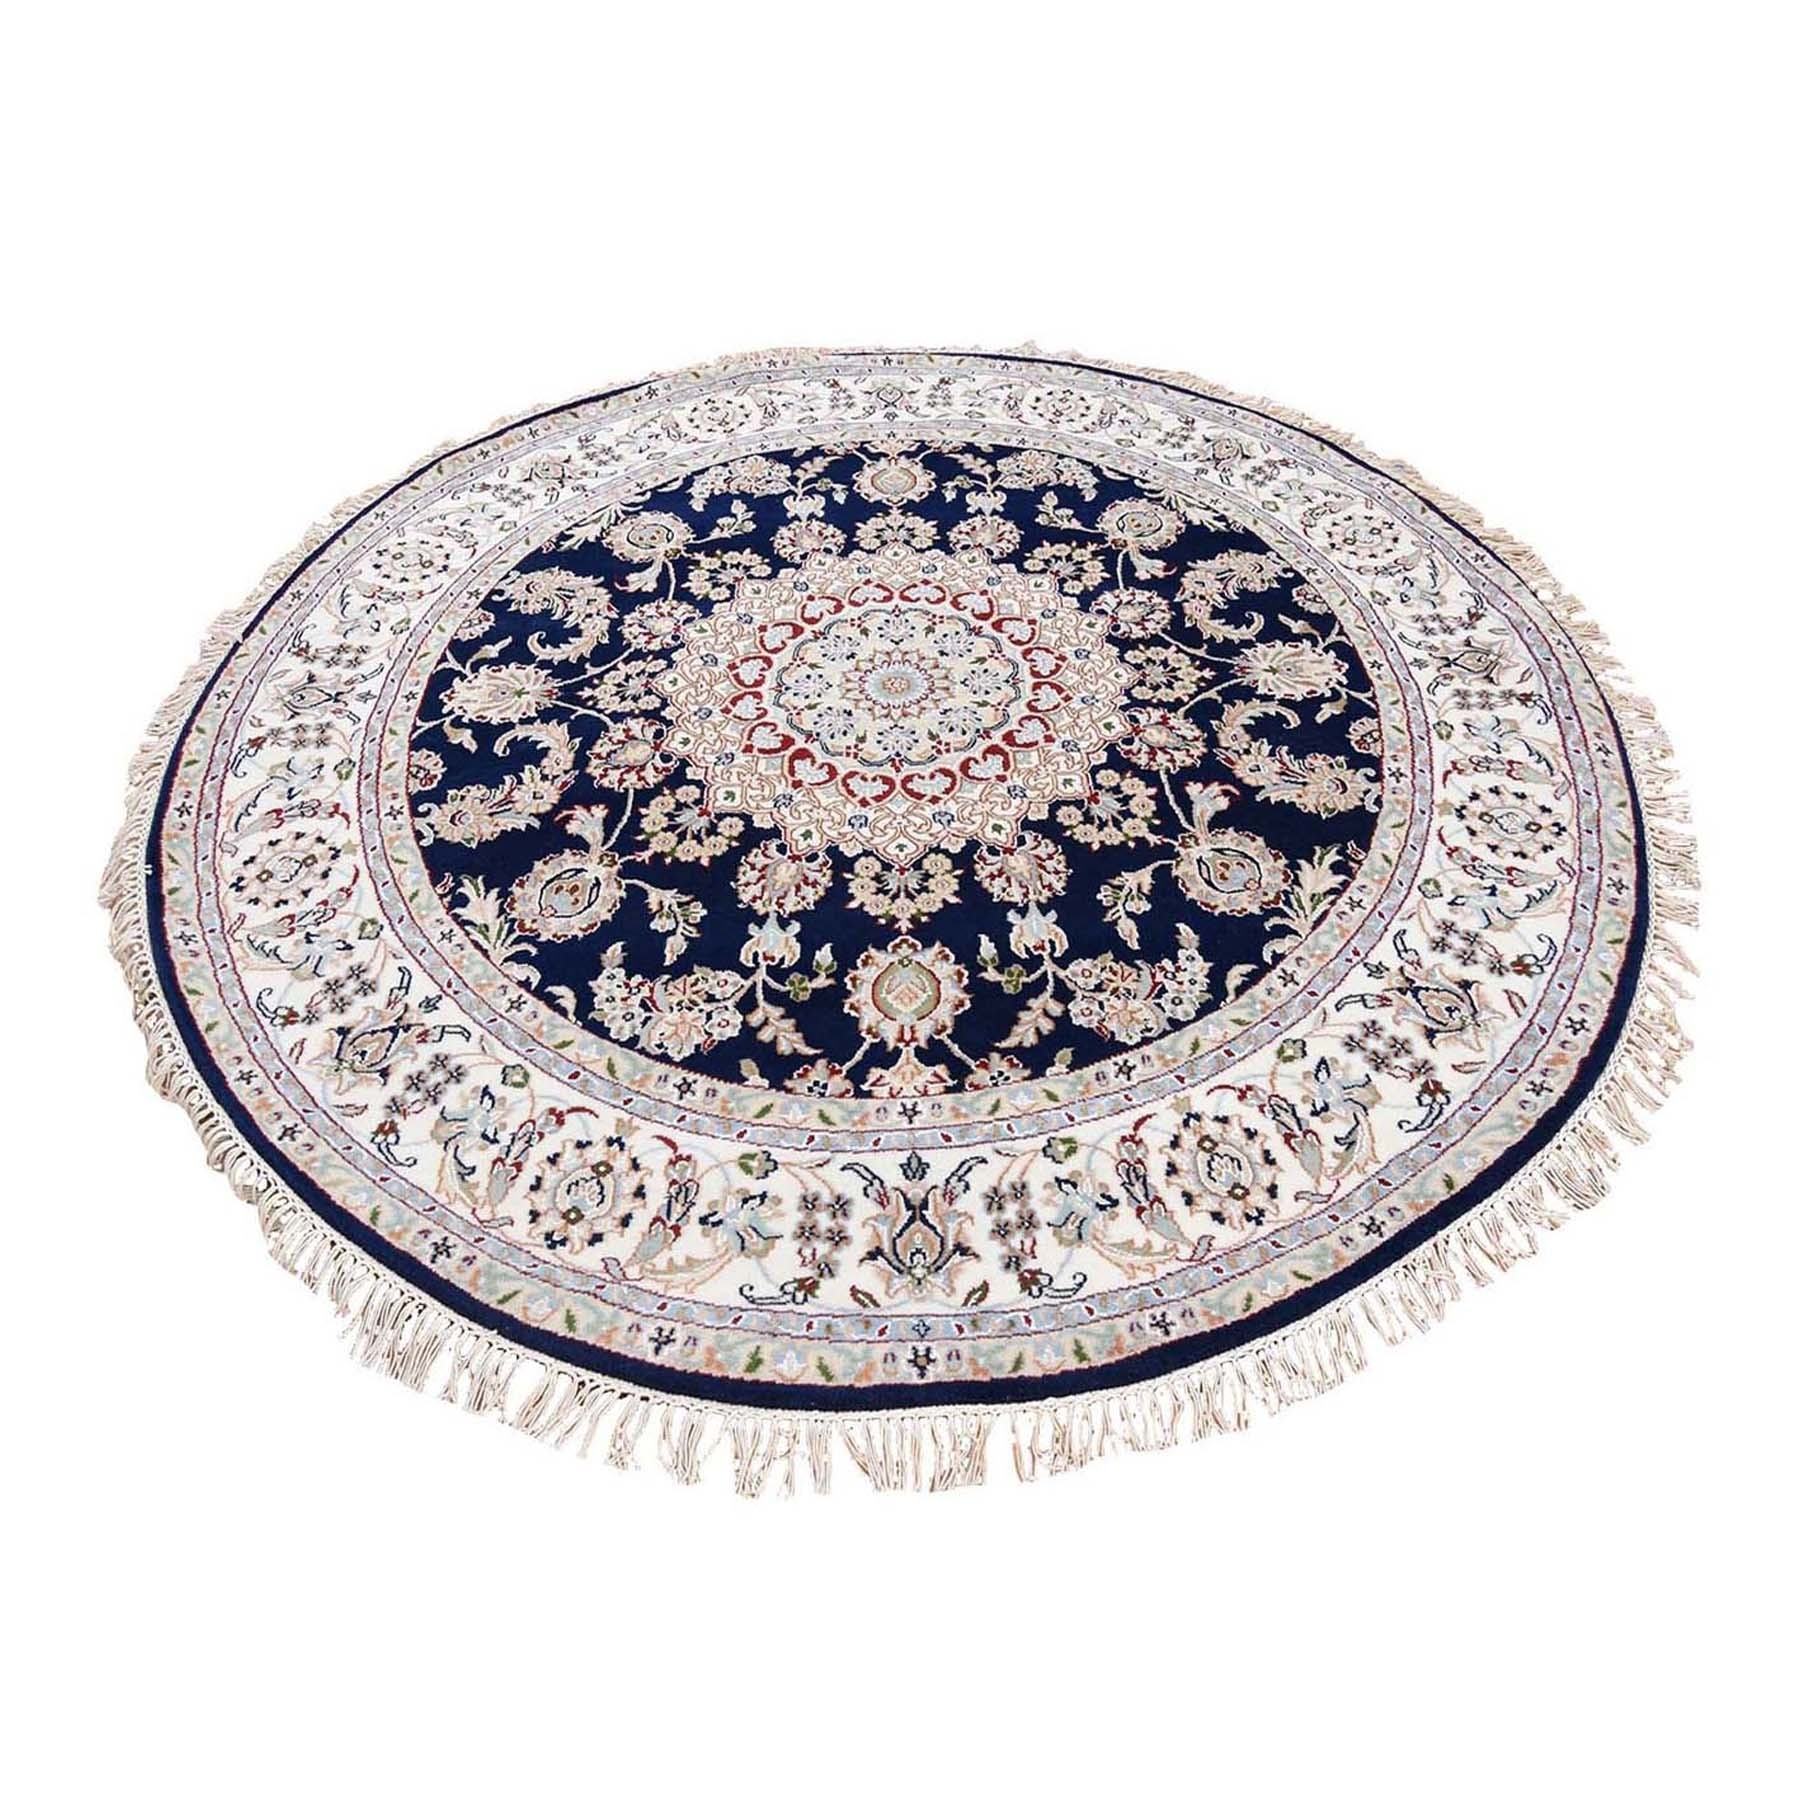 Pirniakan Collection Hand Knotted Blue Rug No: 1119968